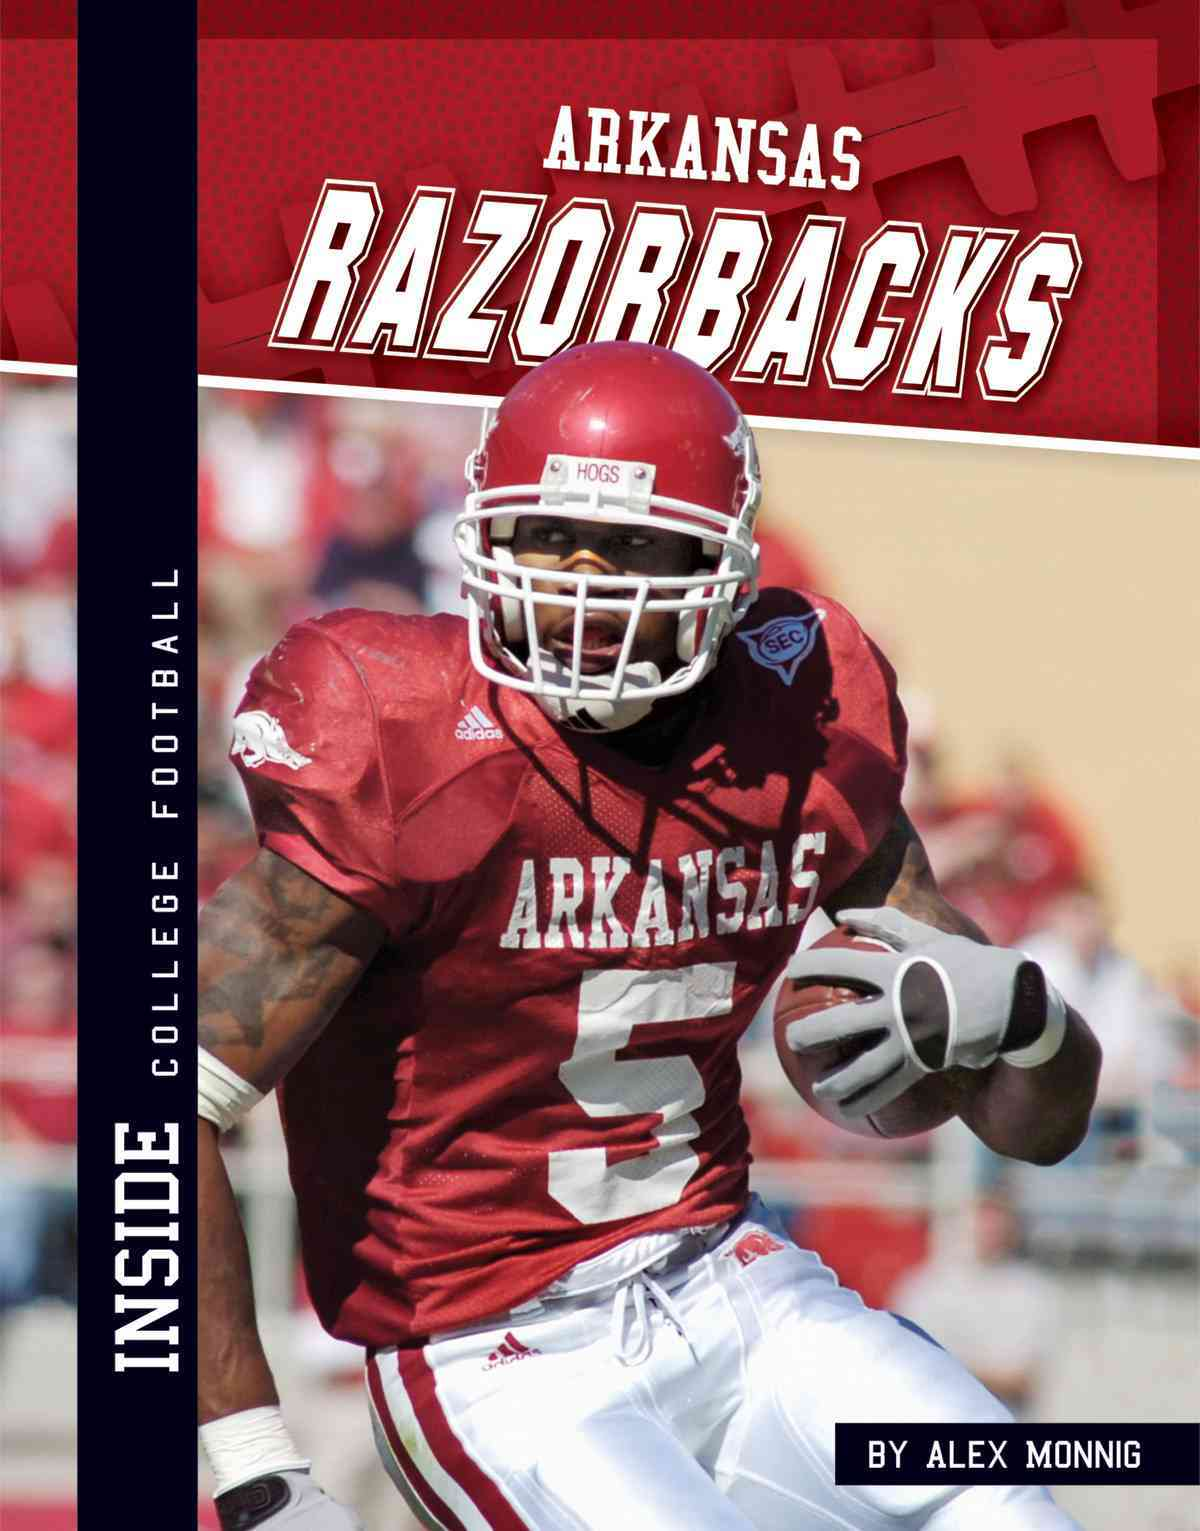 Arkansas Razorbacks By Monnig, Alex